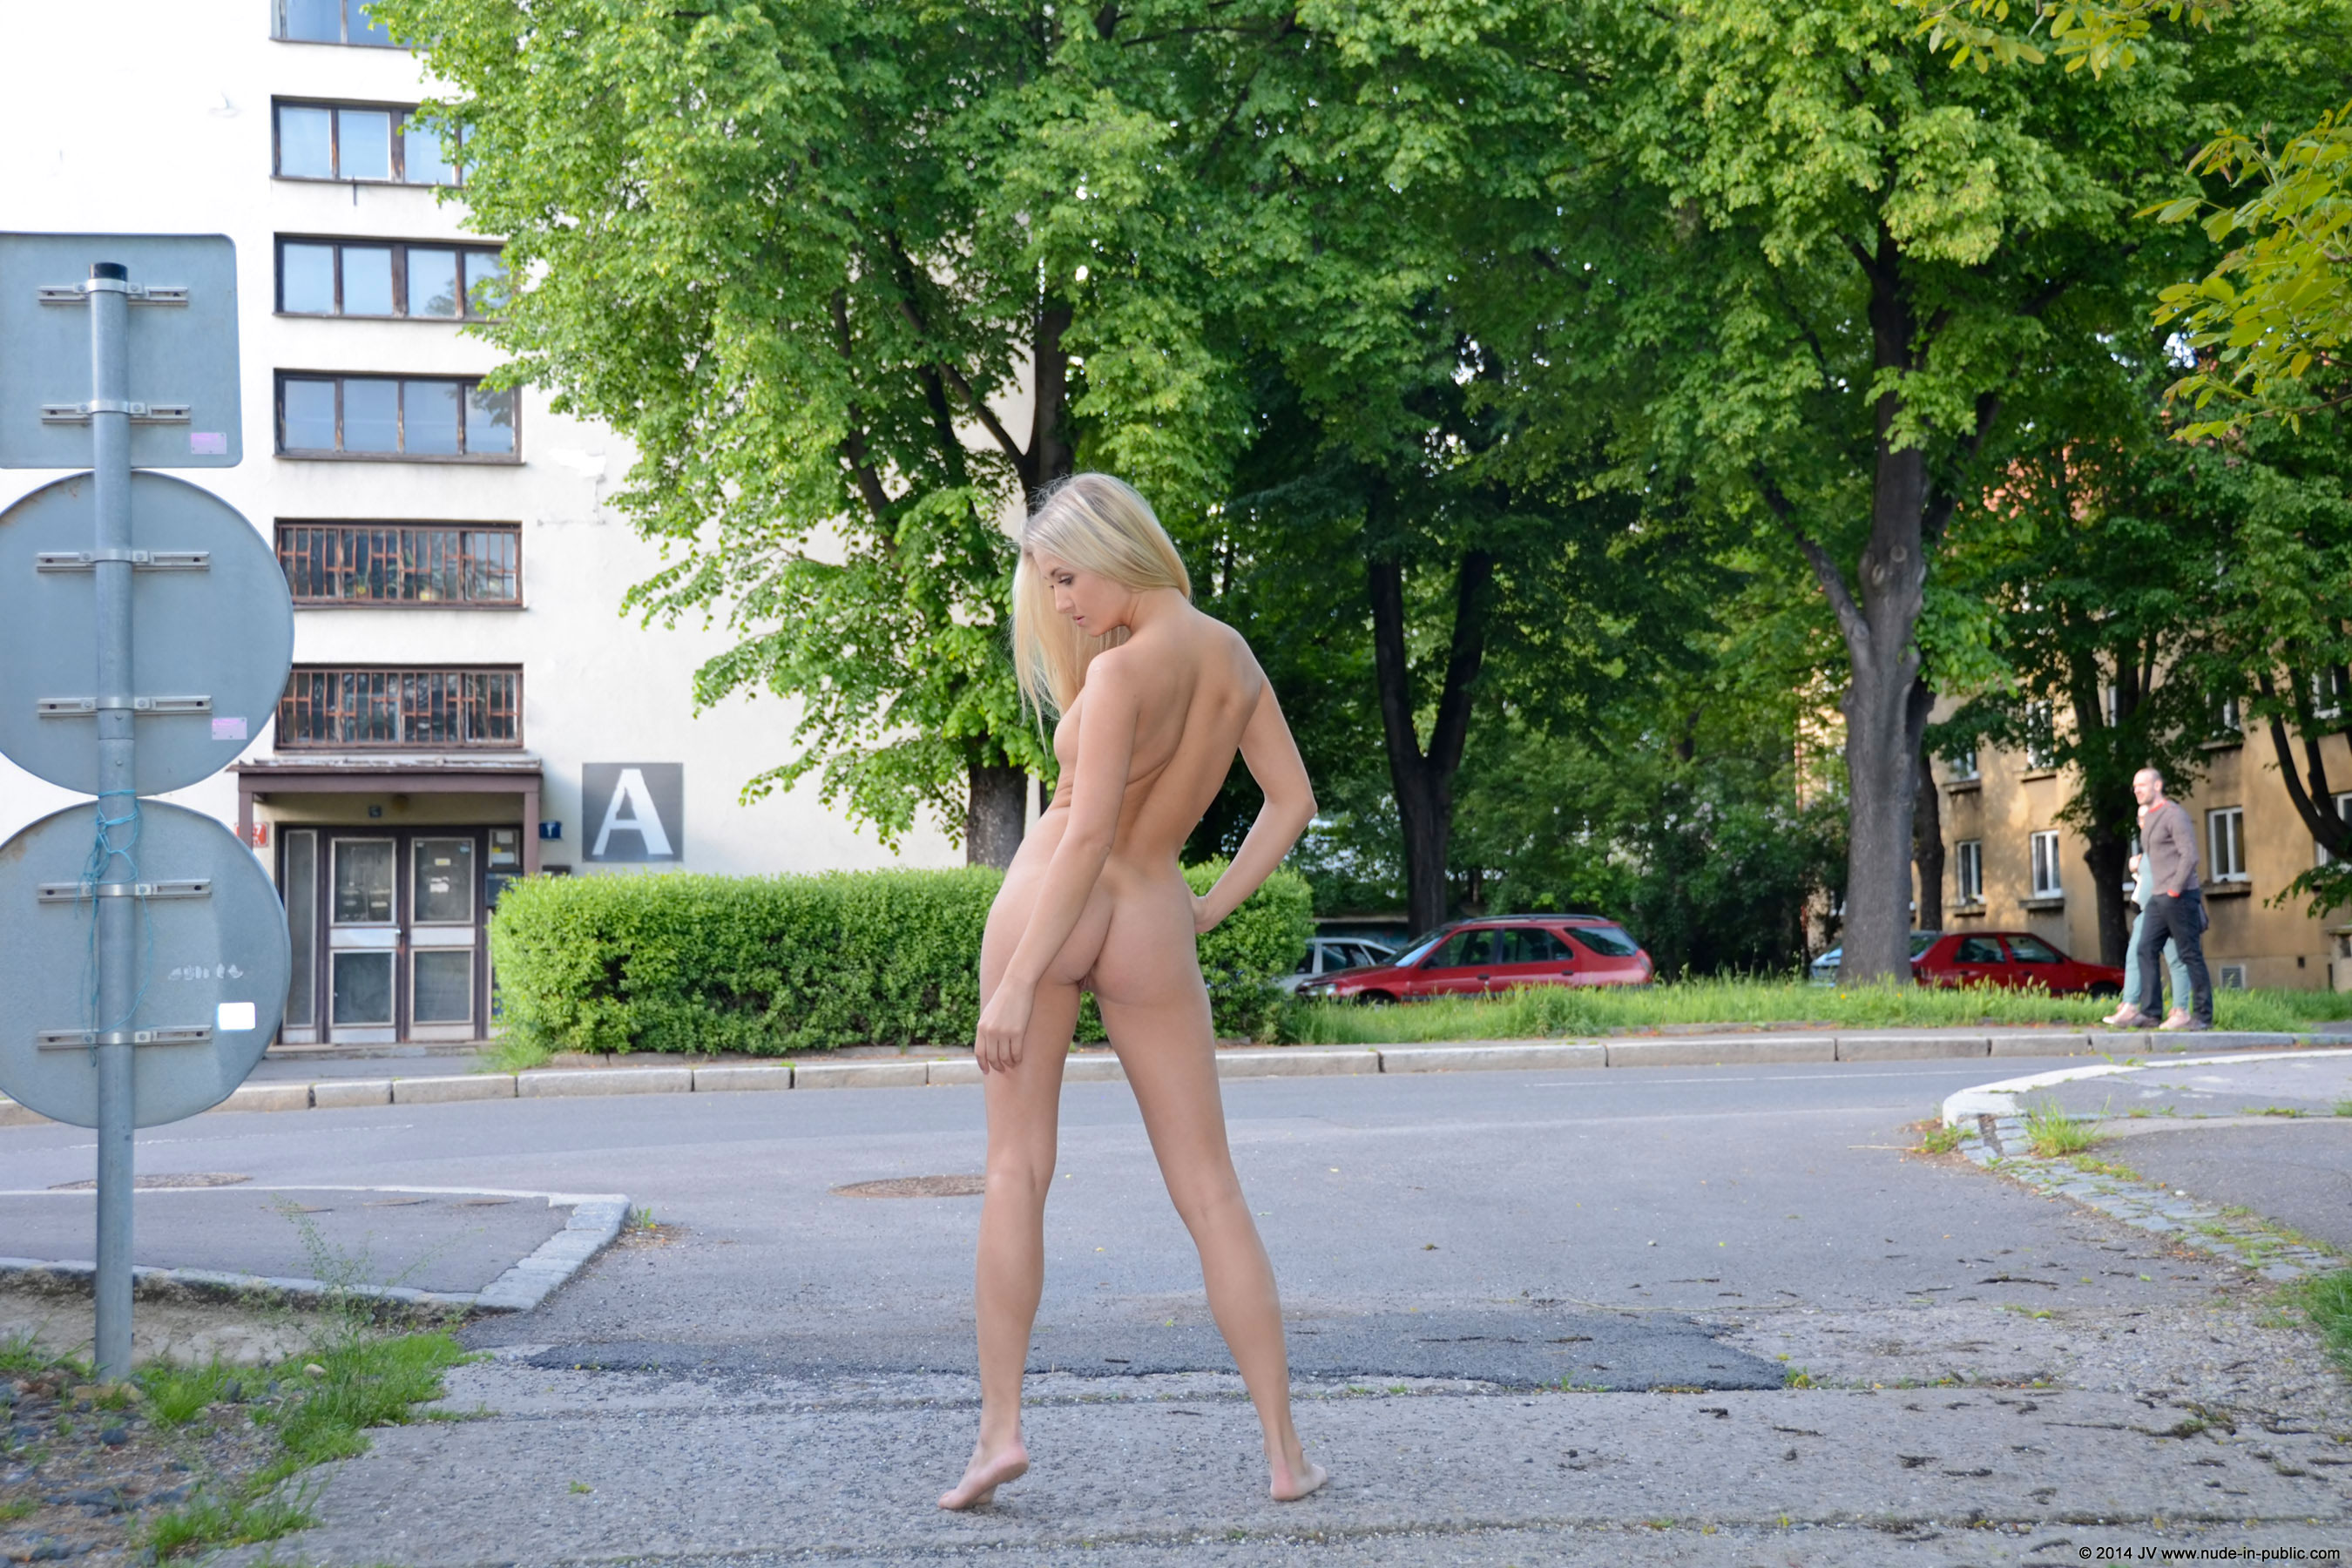 karolina-m-blonde-on-the-street-nude-in-public-24